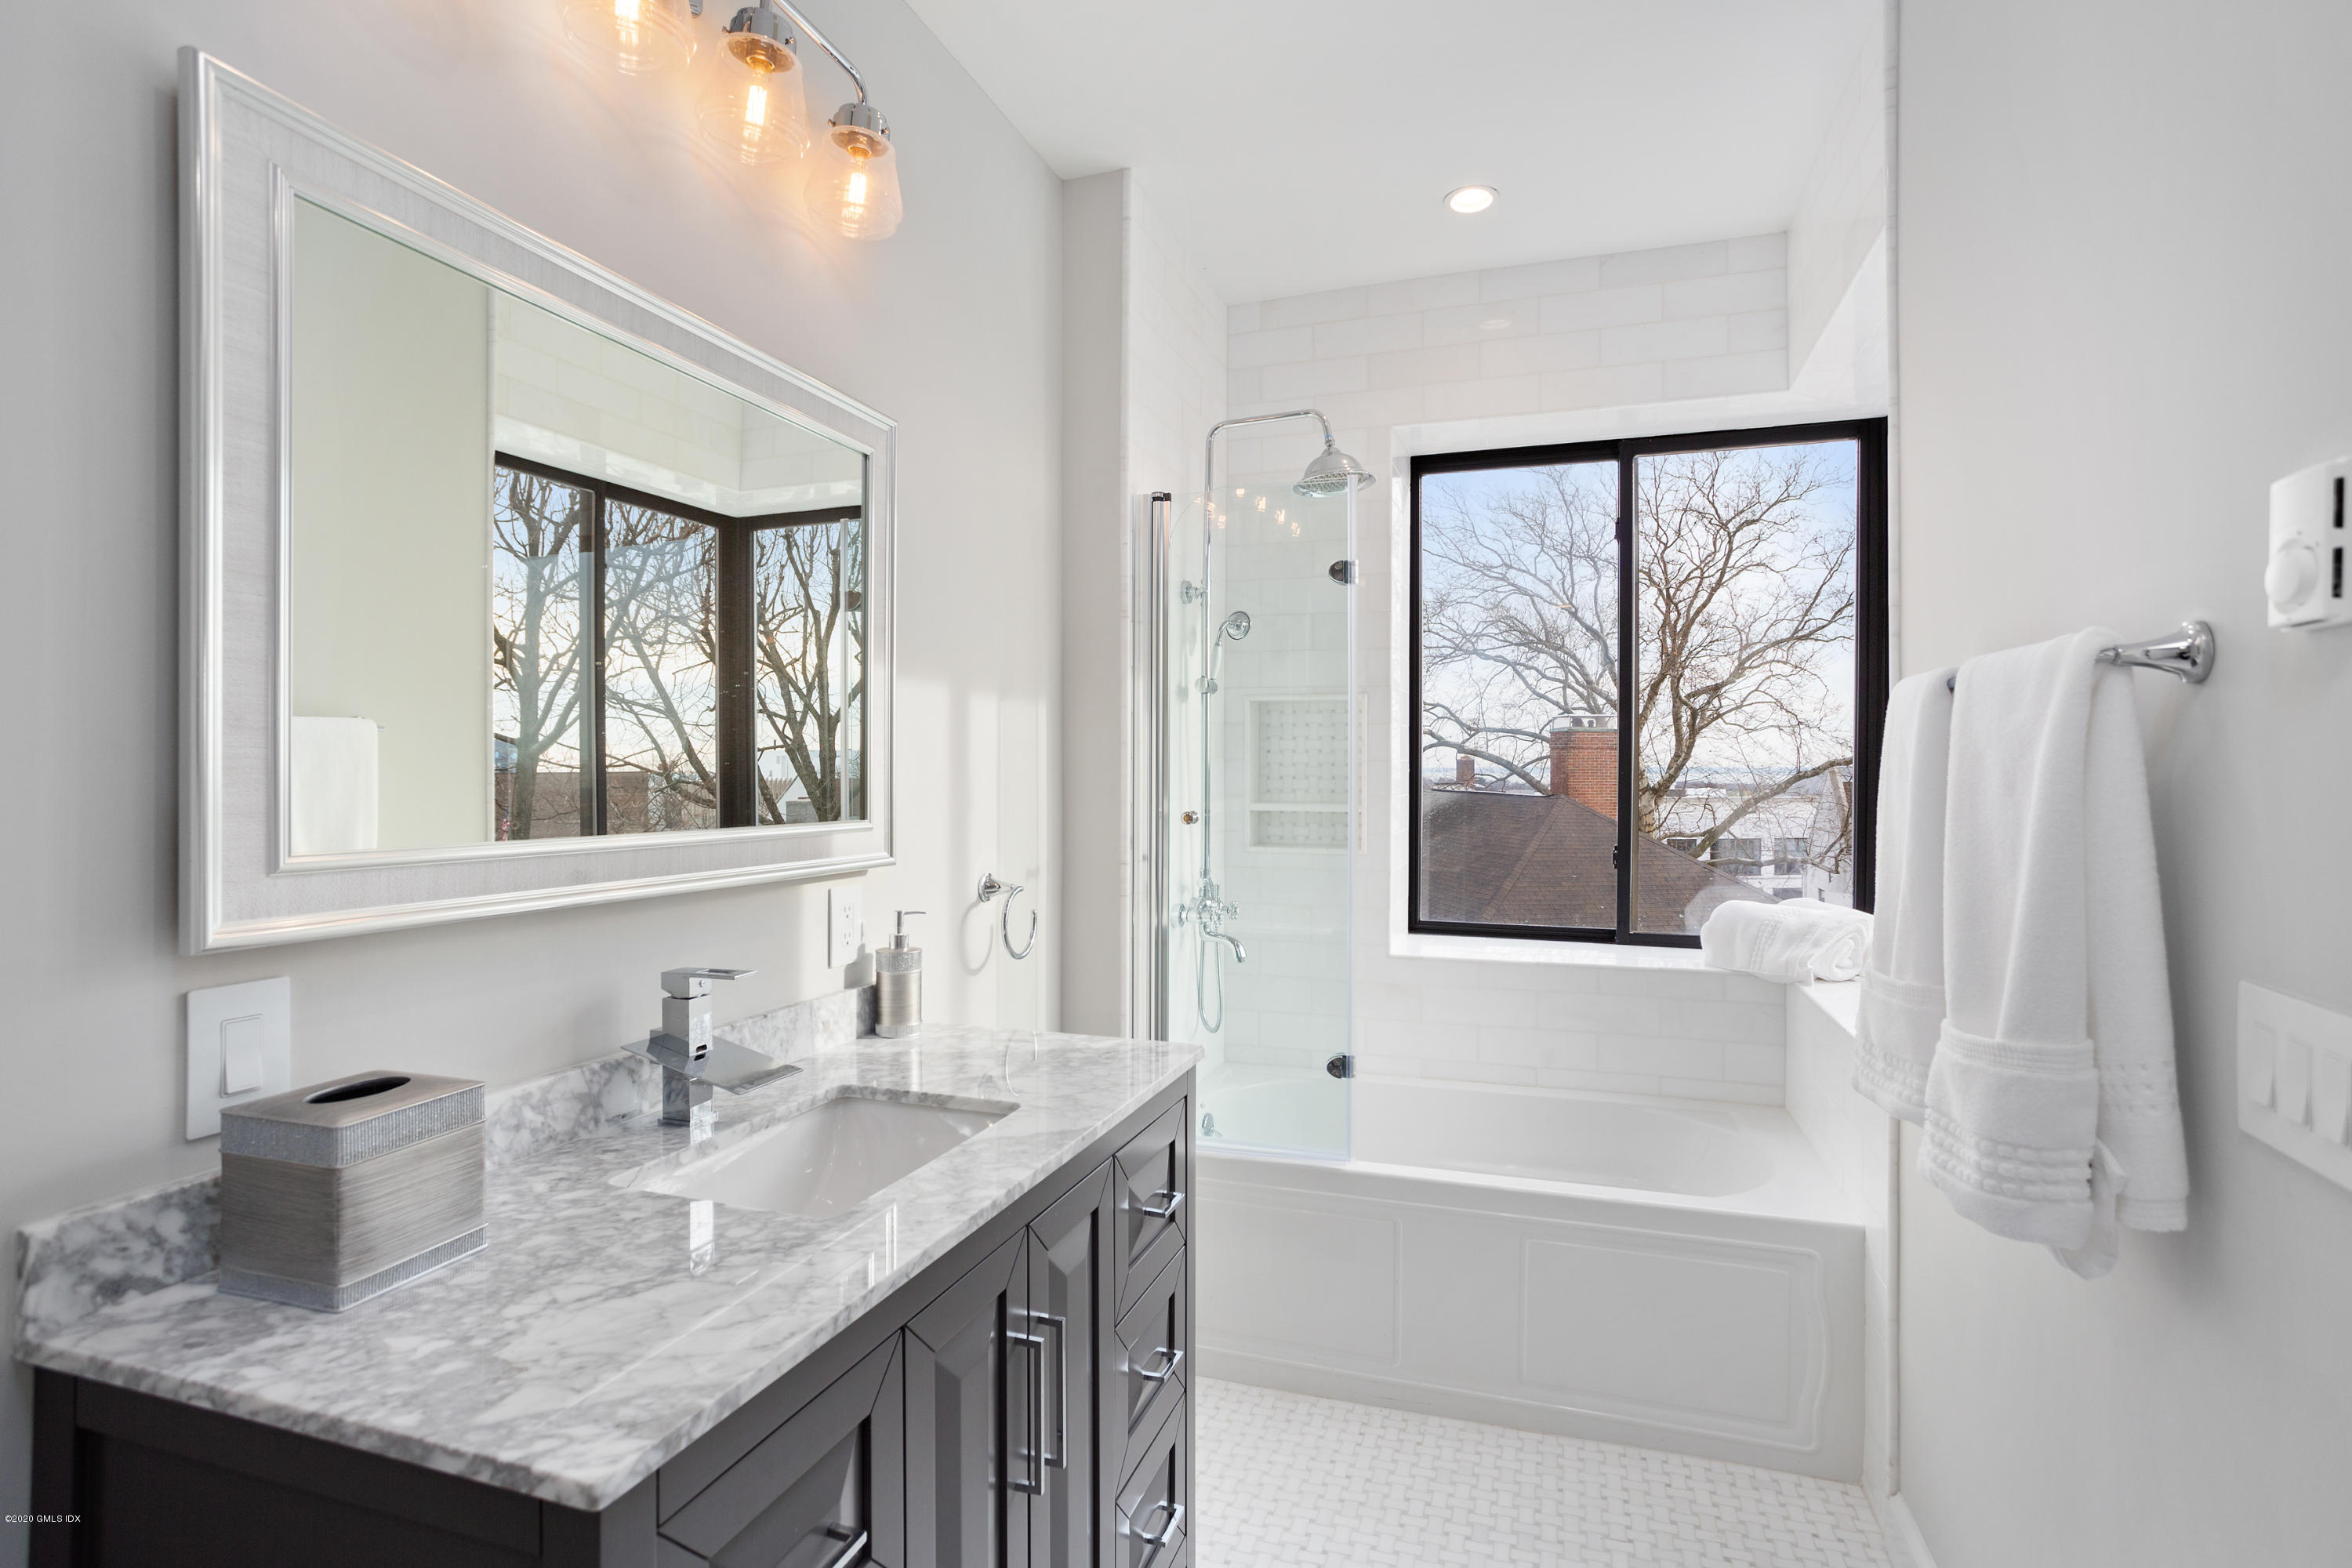 9 Lafayette Court,Greenwich,Connecticut 06830,2 Bedrooms Bedrooms,2 BathroomsBathrooms,Condominium,Lafayette,108569